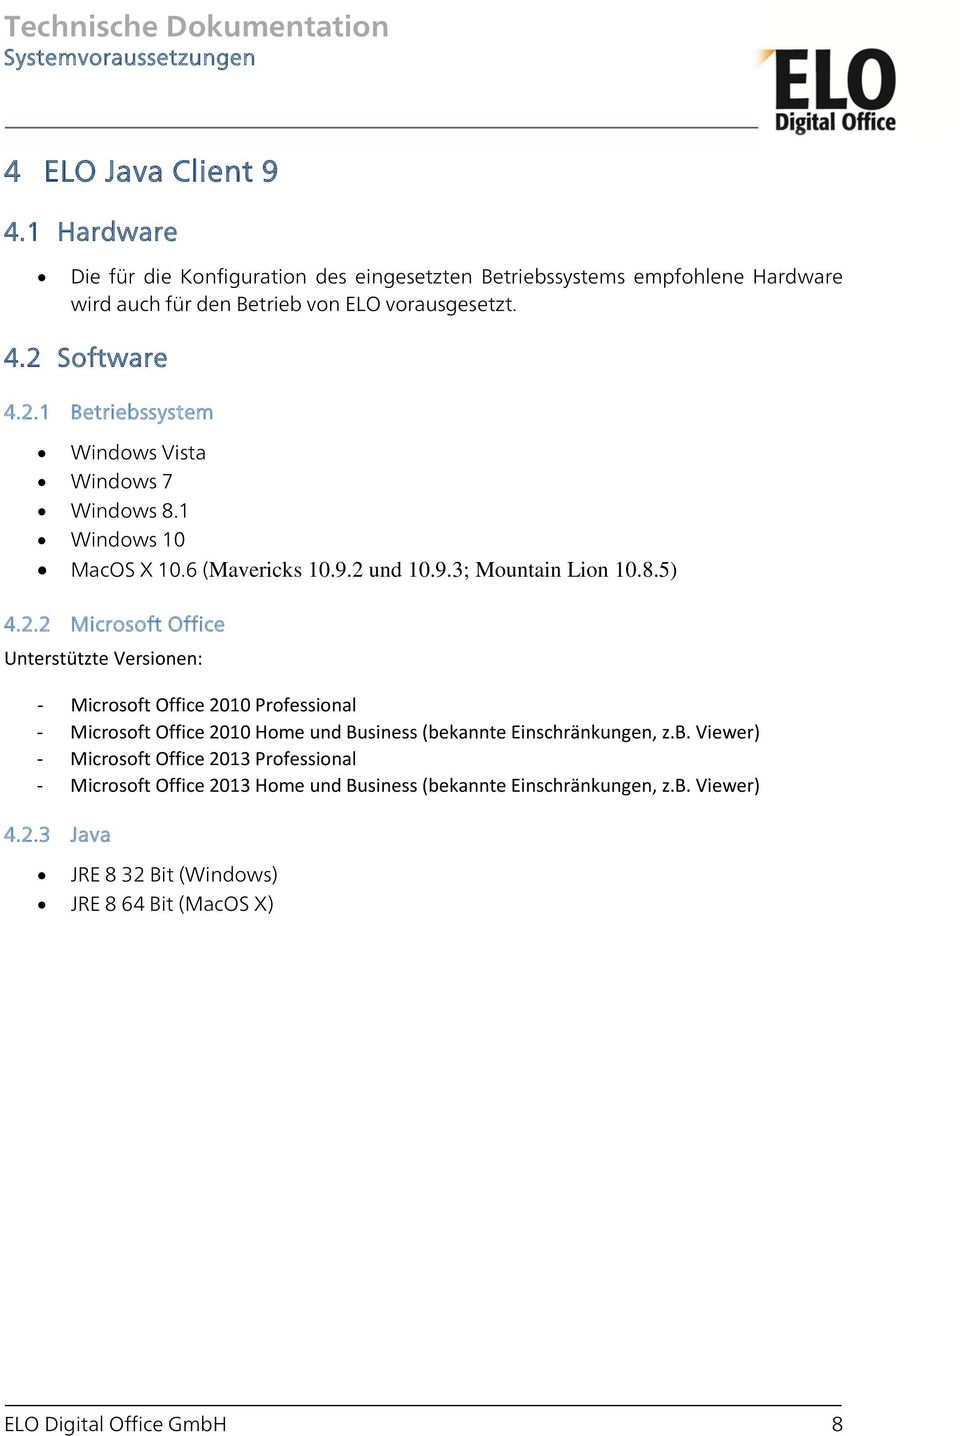 b. Viewer) - Microsoft Office 2013 Professional - Microsoft Office 2013 Home und Business (bekannte Einschränkungen, z.b. Viewer) 4.2.3 Java JRE 8 32 Bit (Windows) JRE 8 64 Bit (MacOS X) ELO Digital Office GmbH 8